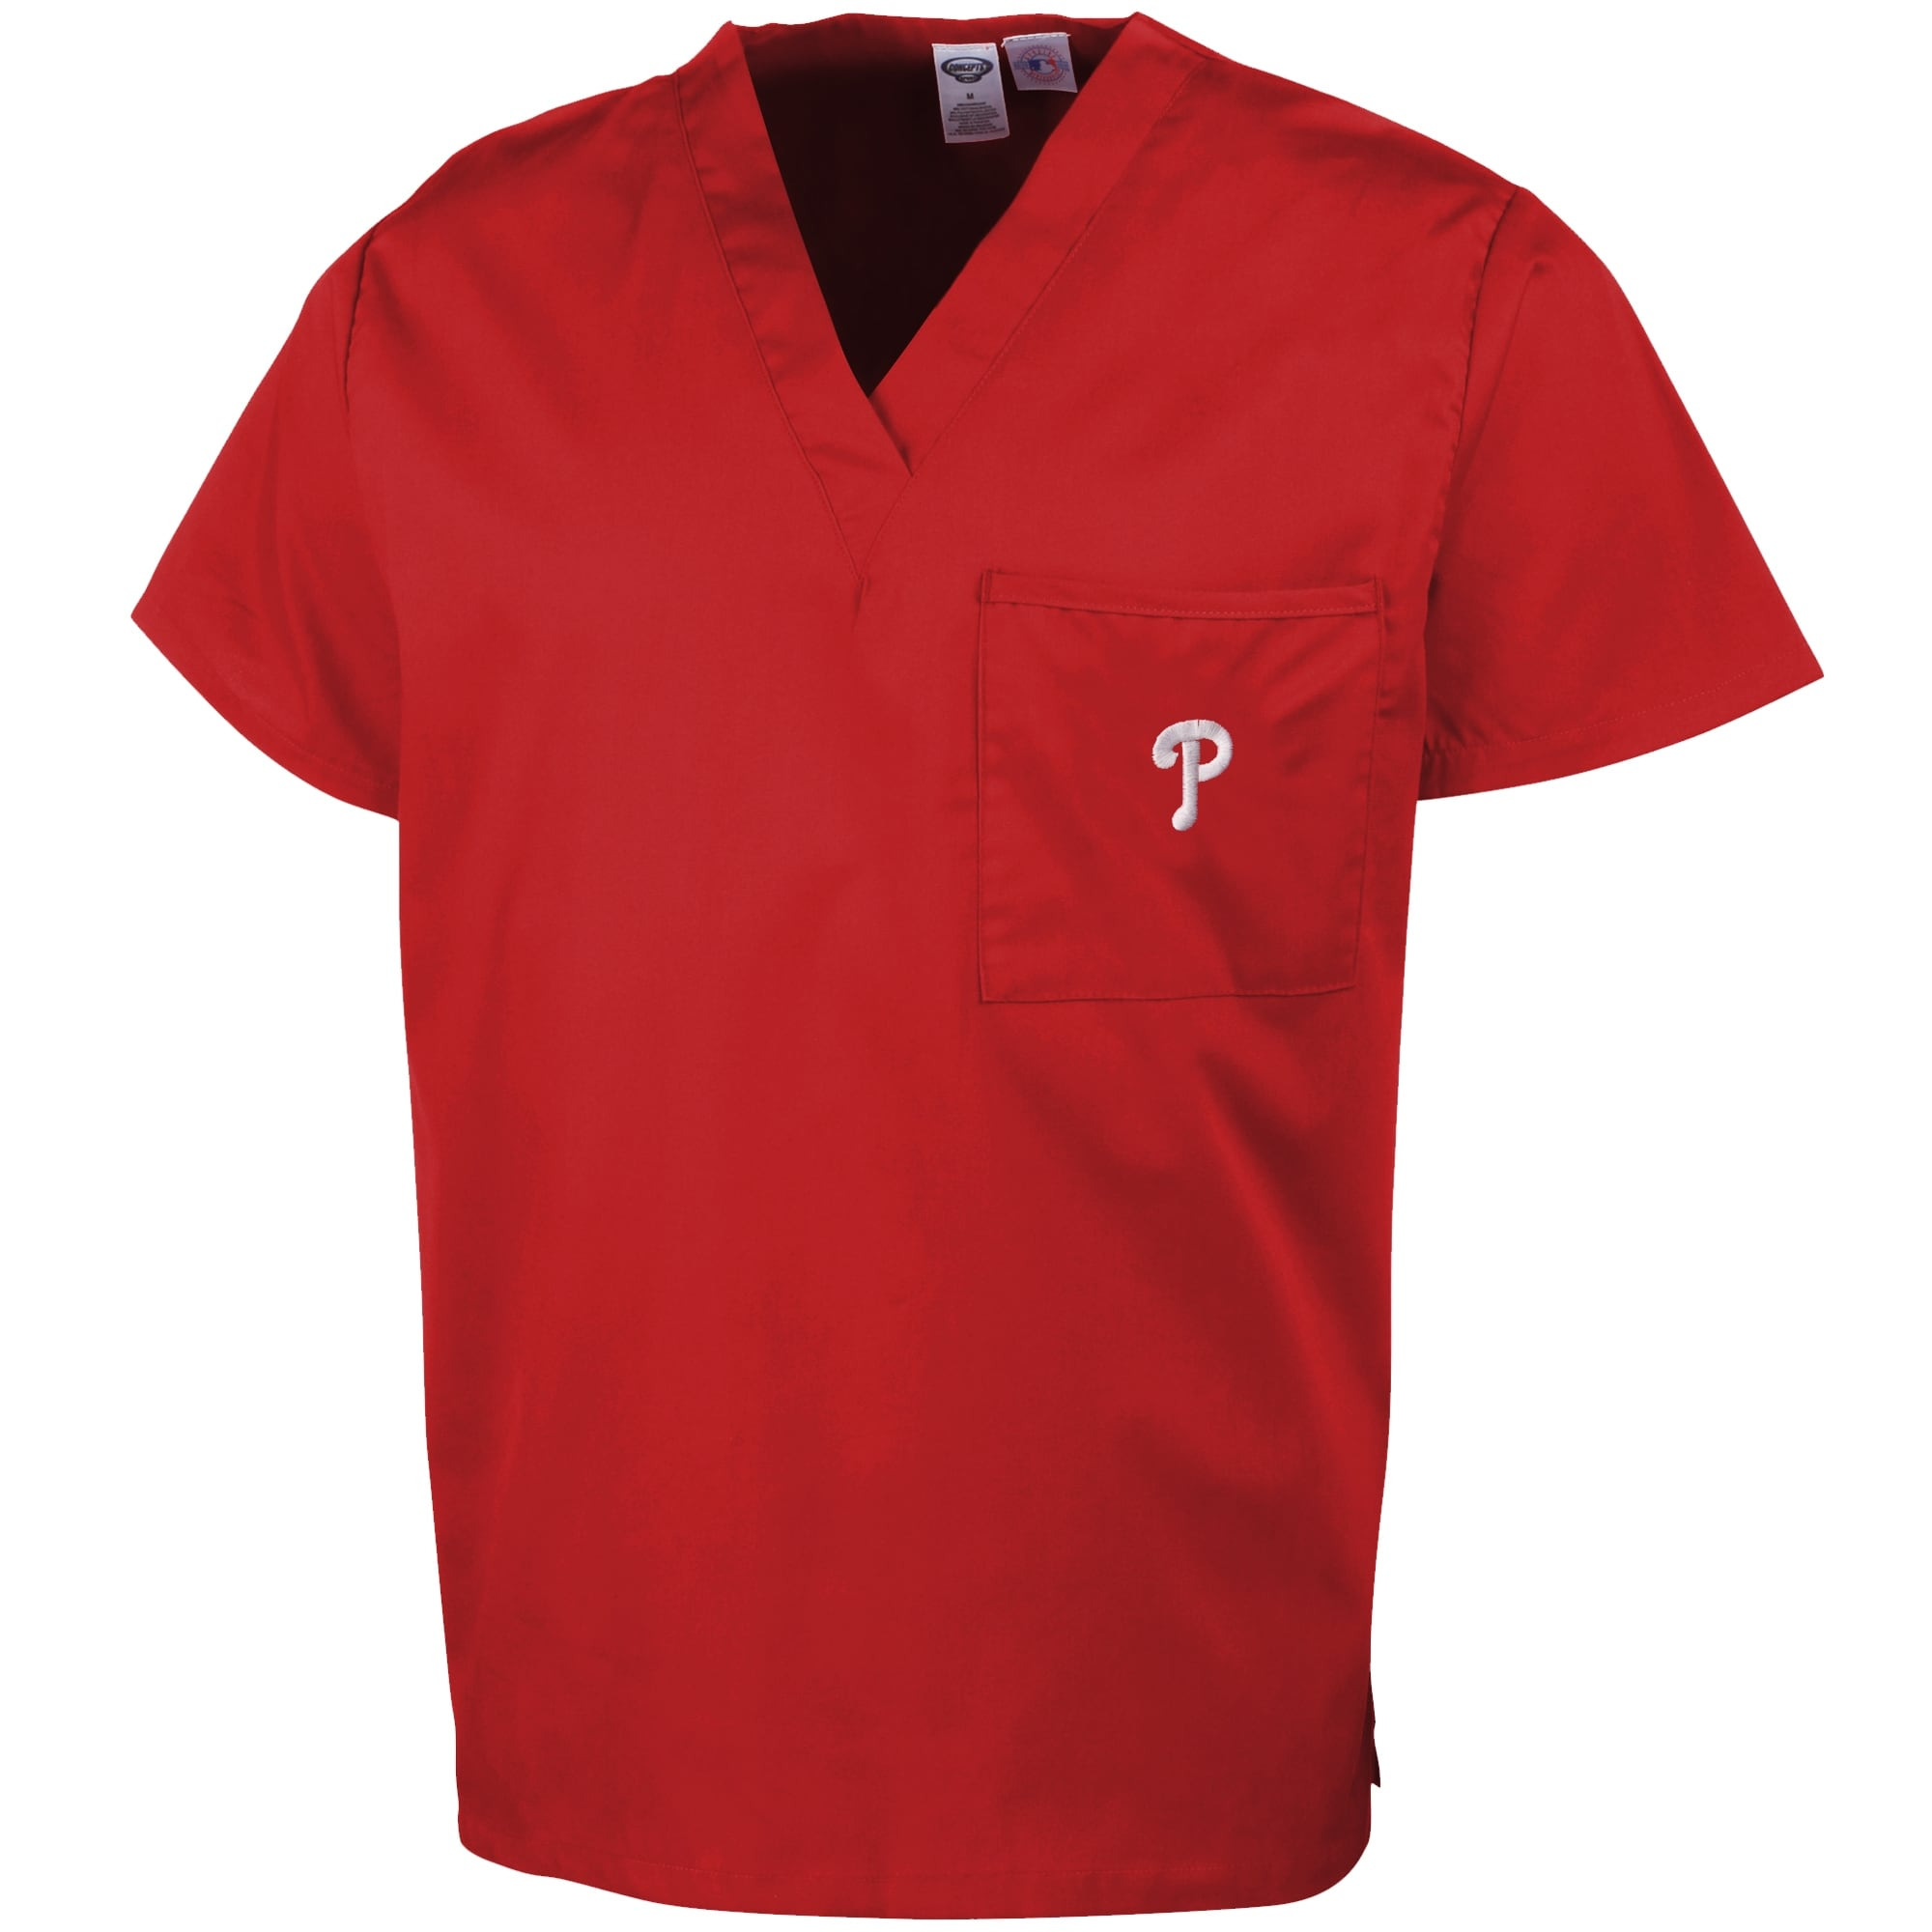 Philadelphia Phillies Unisex Scrub Top - Red